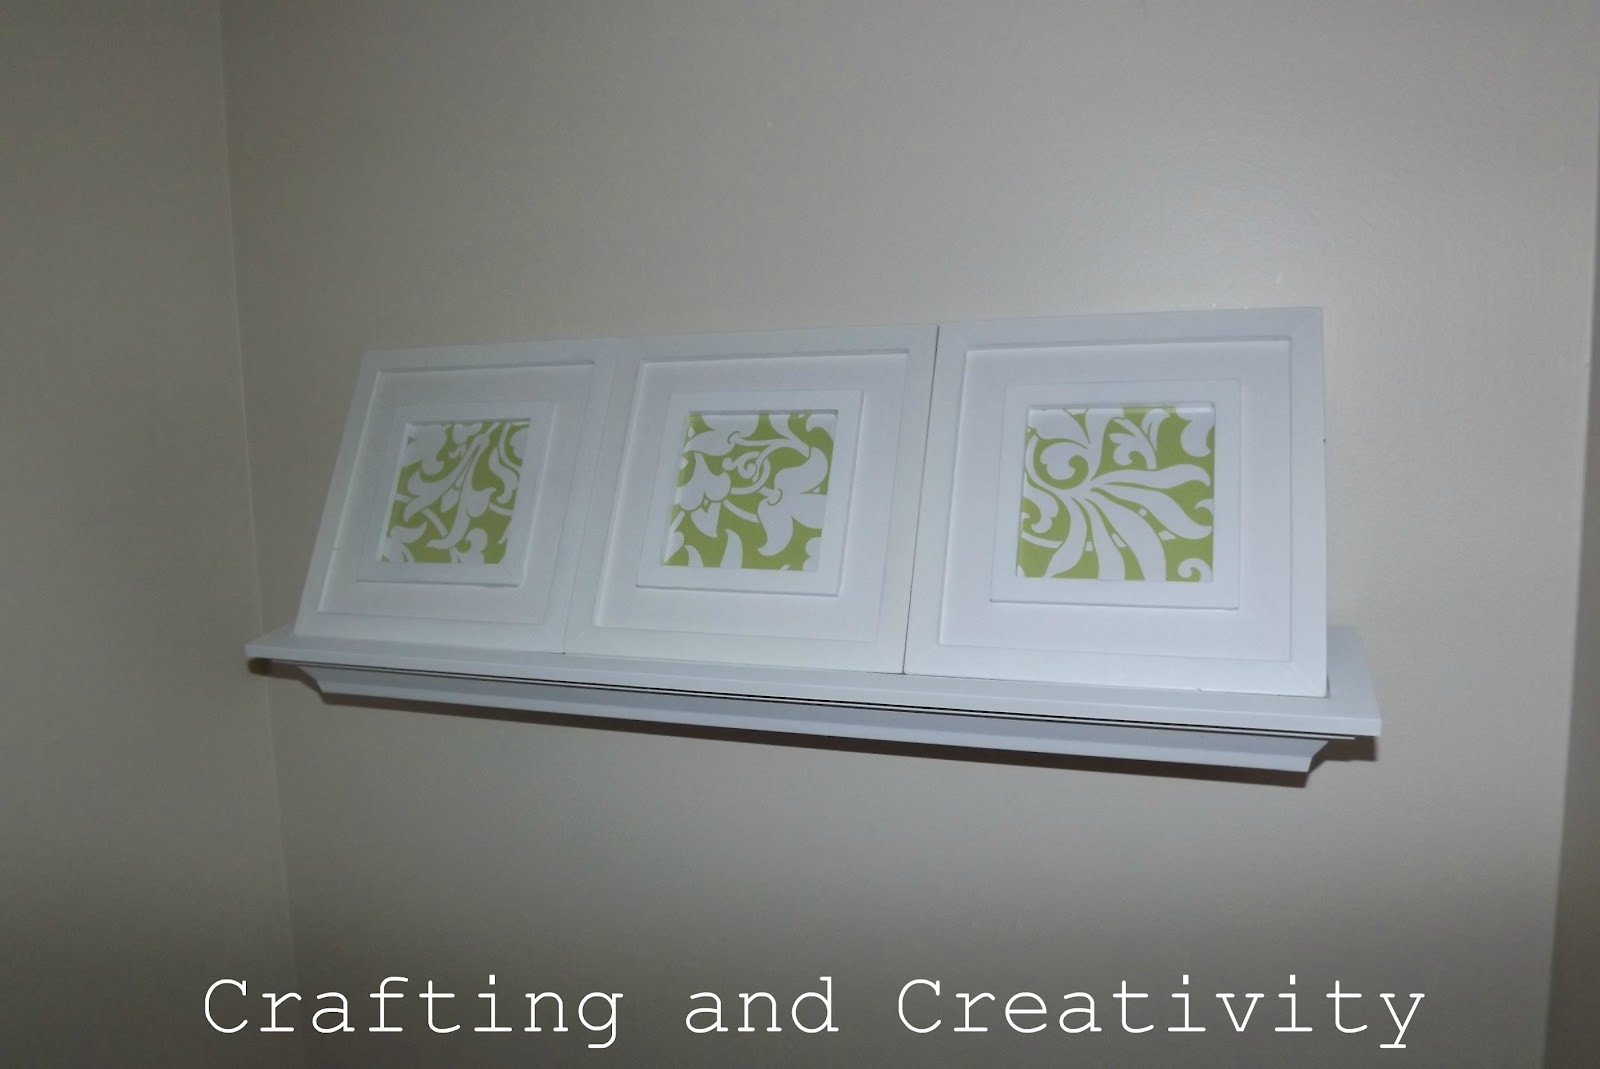 Best ideas about Wall Art Cheap . Save or Pin Crafting and Creativity Cheap Wall Art Now.